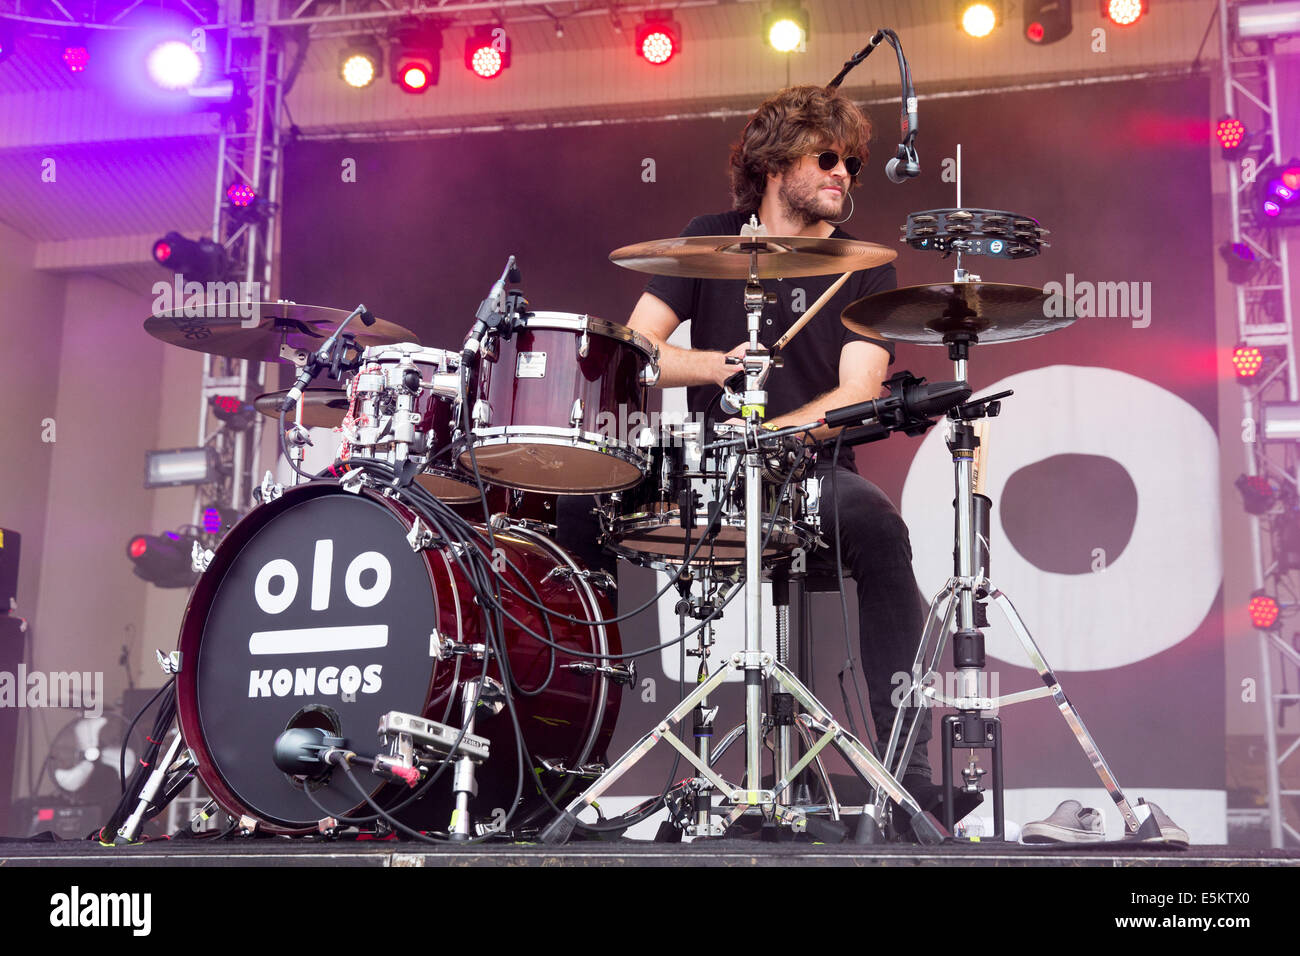 Chicago, Illinois, USA. 3rd Aug, 2014. Drummer JESSE KONGOS of the band Kongos performs live at the 2014 Lollapalooza - Stock Image